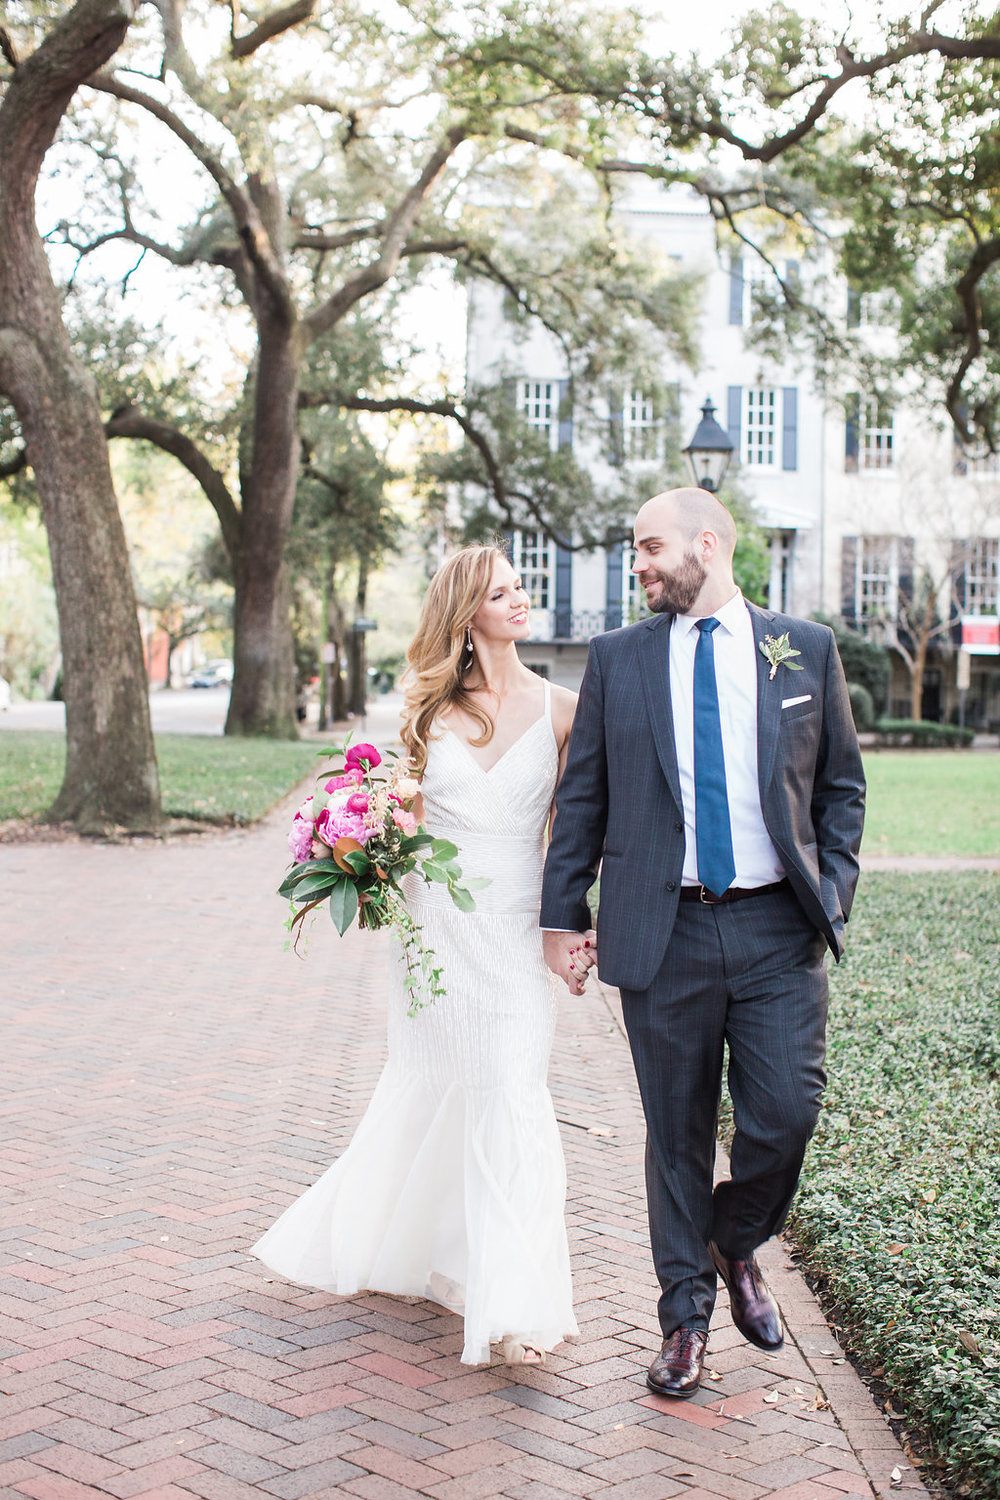 helen-tom-apt-b-photography-savannah-weddings-ivory-and-beau-bridal-boutique-savannah-bridal-boutique-savannah-florist-georgia-state-railroad-museum-wedding-colorful-rustic-wedding-savannah-florist-19.JPG